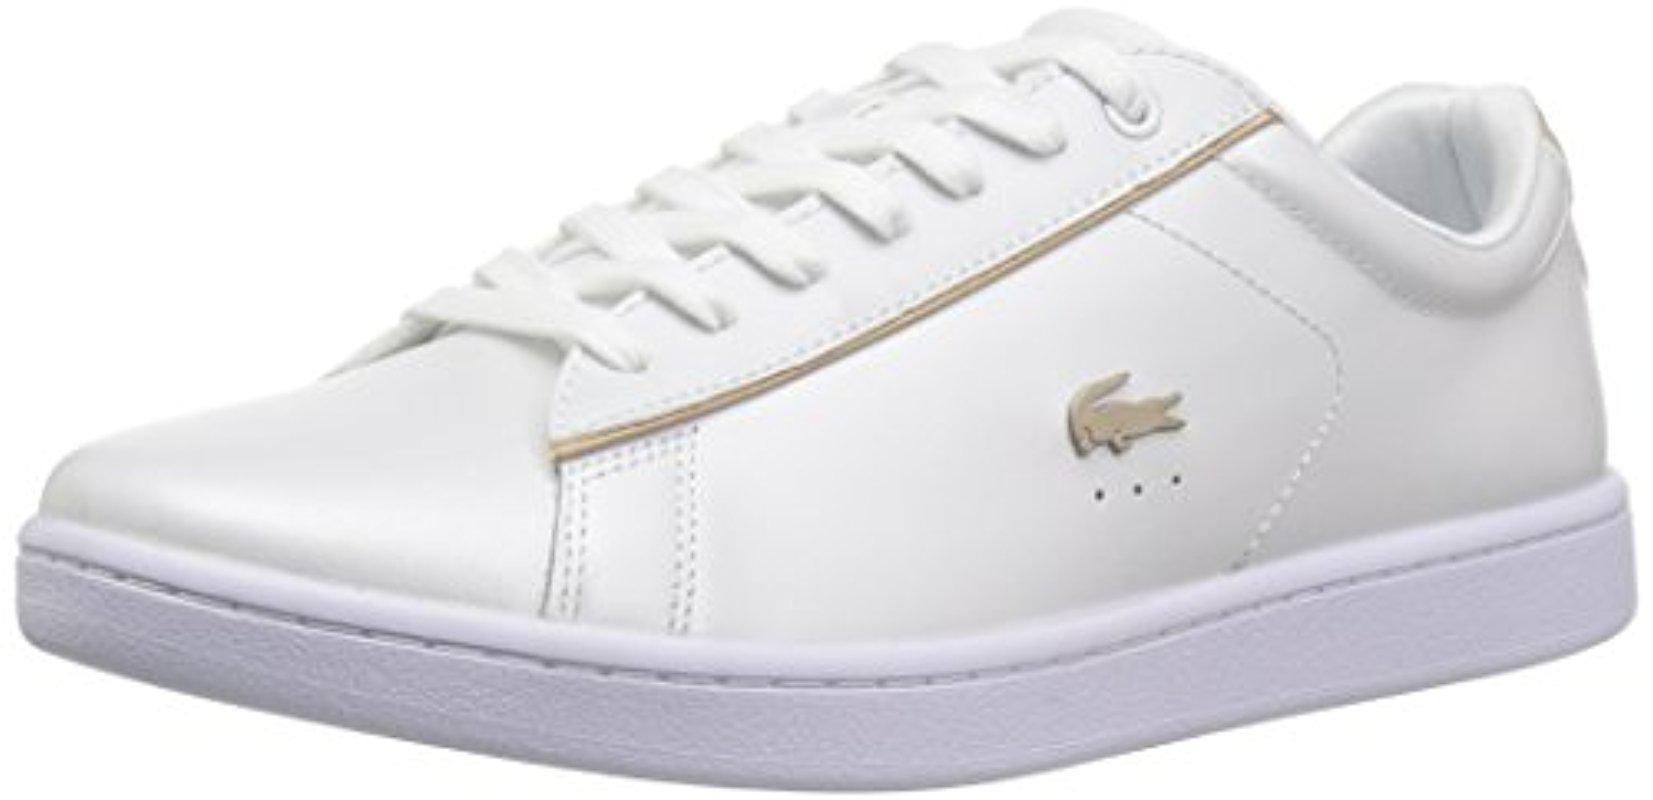 Femmes Carnaby Evo 417 1 Chaussures De Sport Spw Lacoste PG5zl0T9Pm